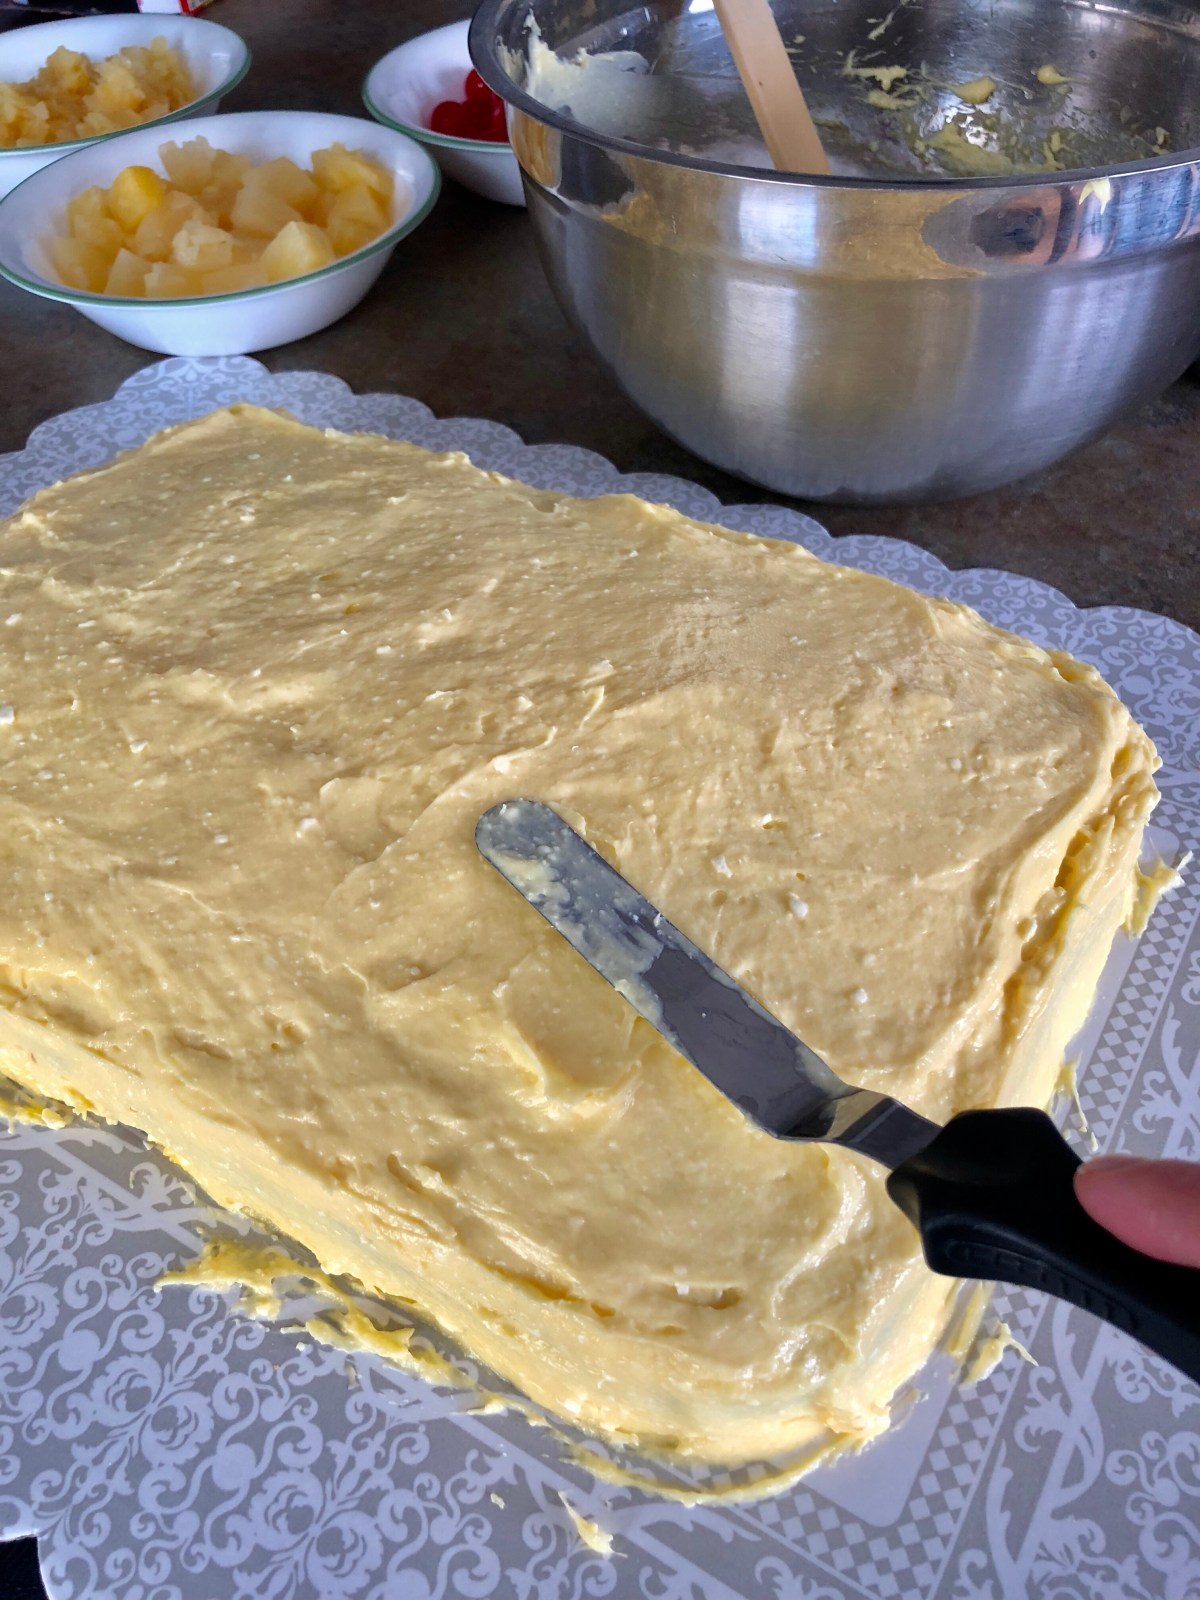 Spread the pudding mixture over top of the cake to cover.